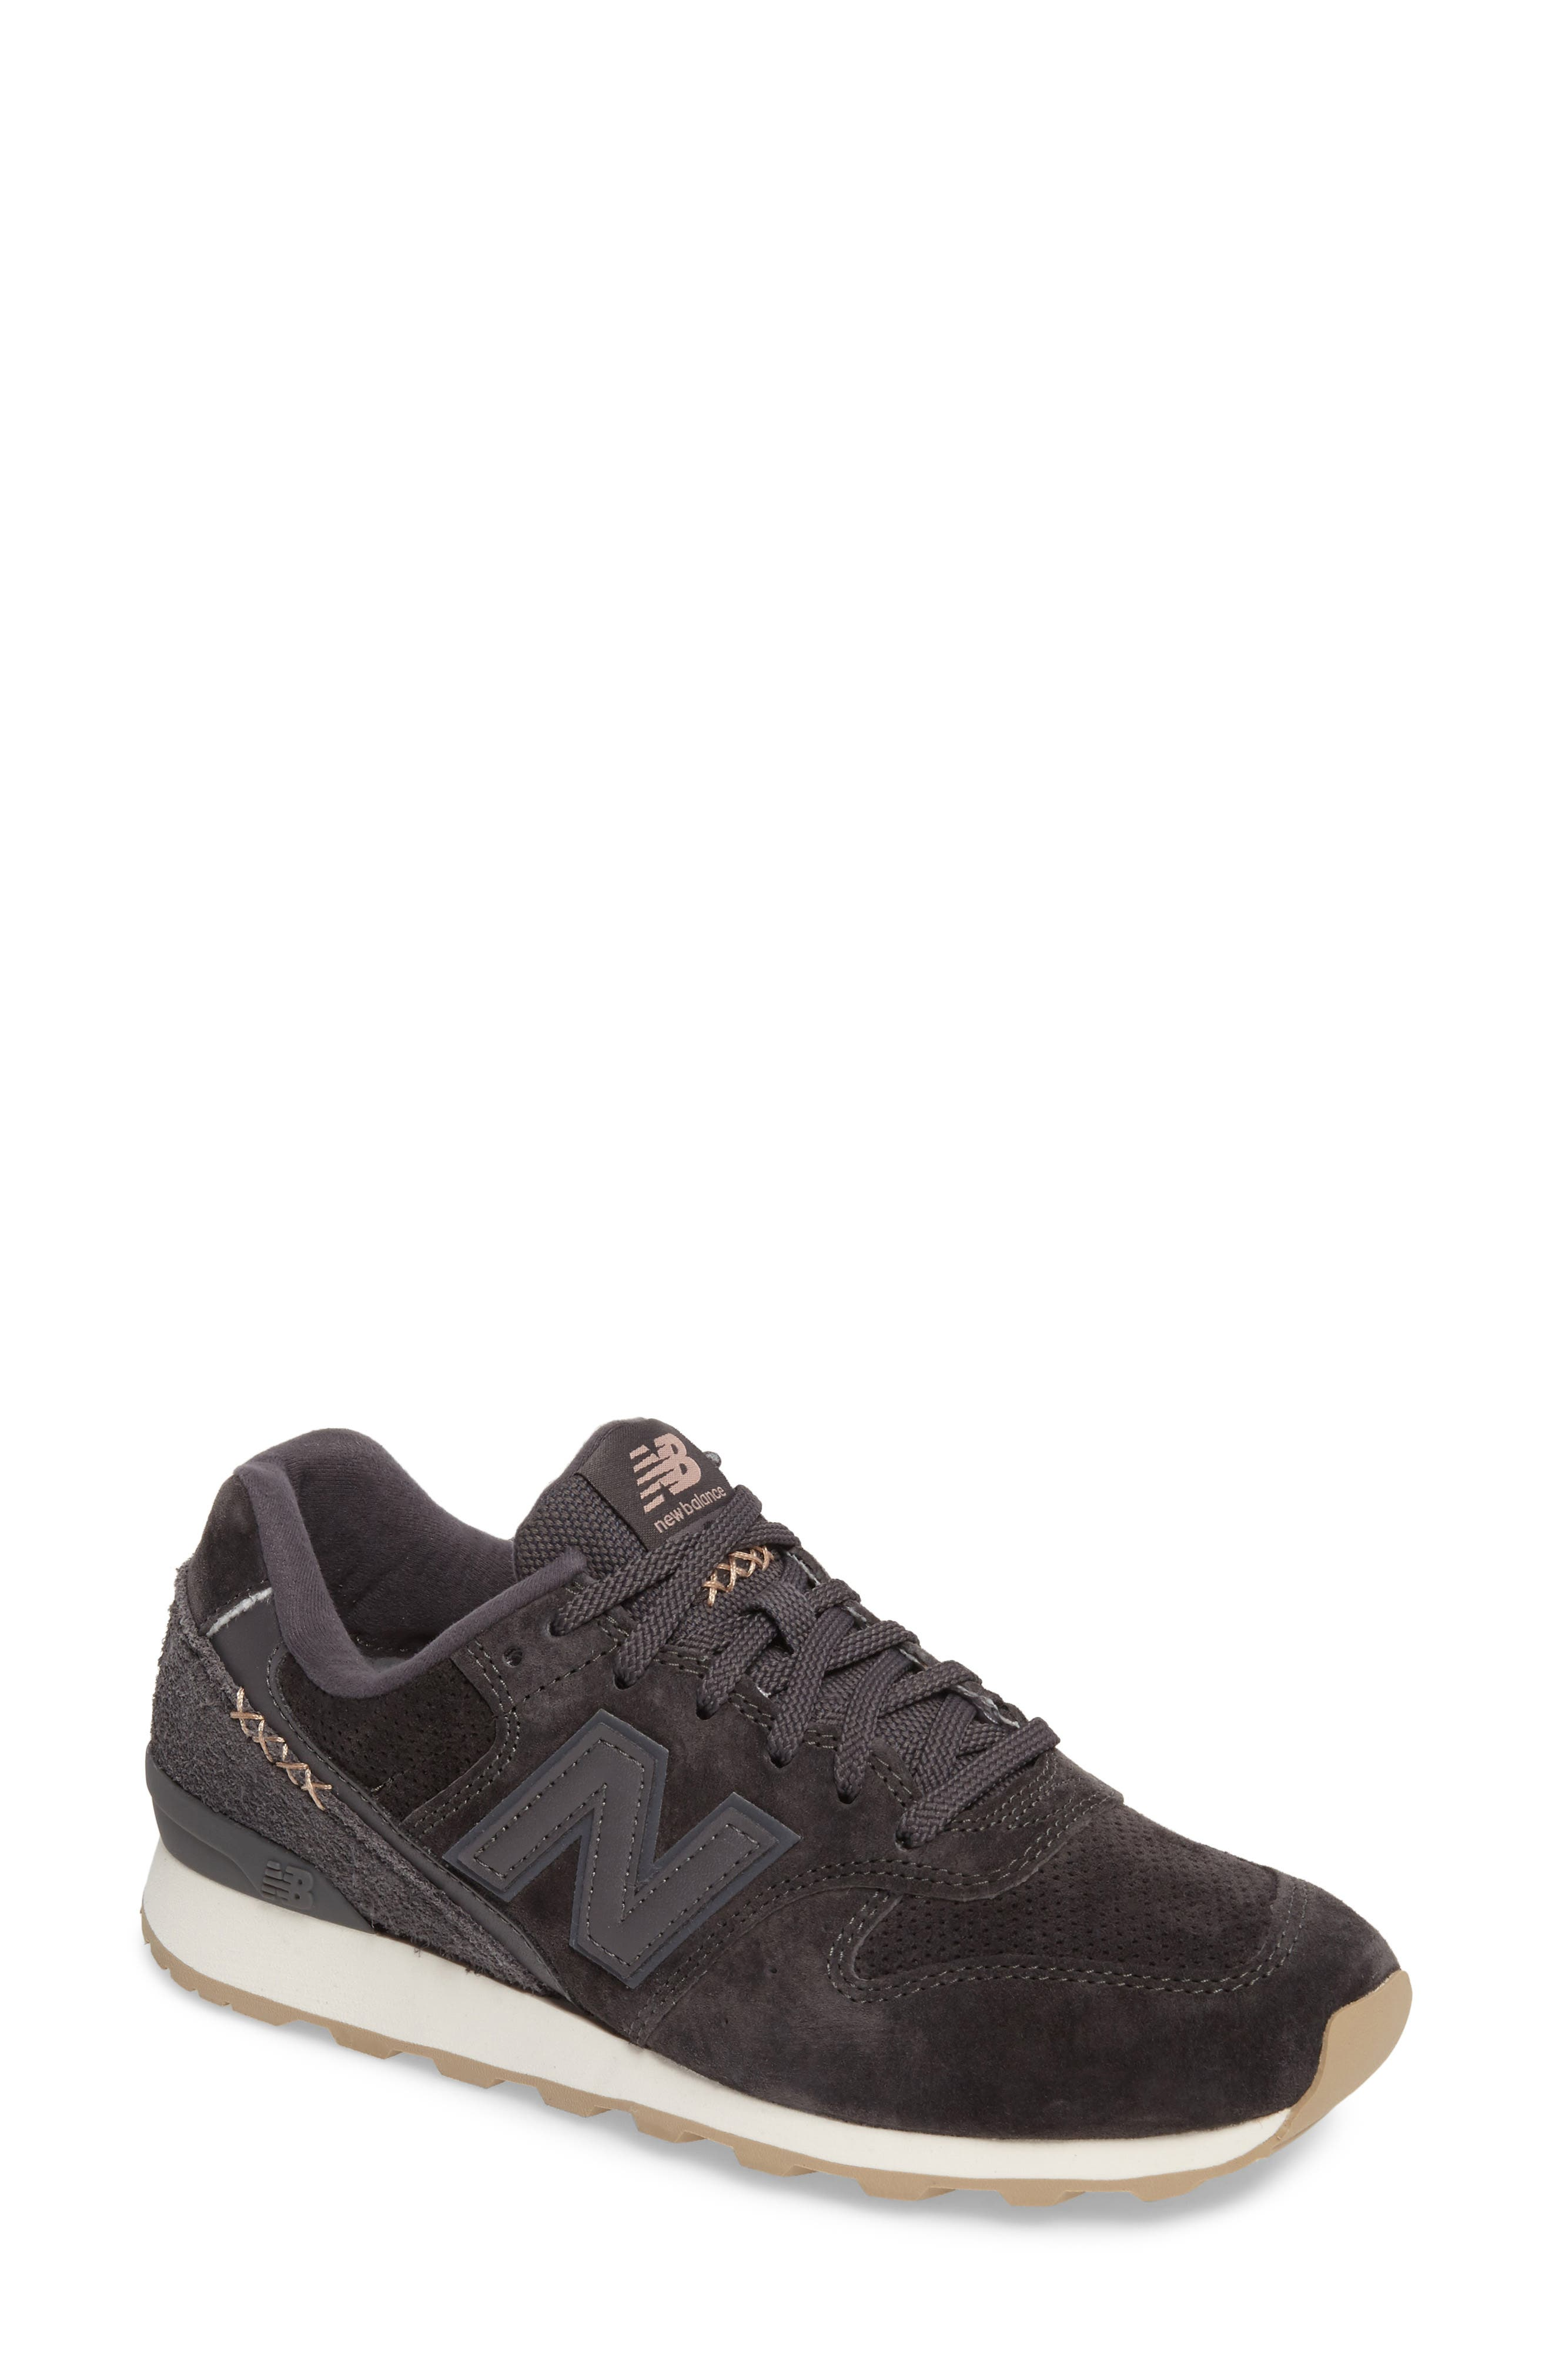 Alternate Image 1 Selected - New Balance 696 Sneaker (Women)